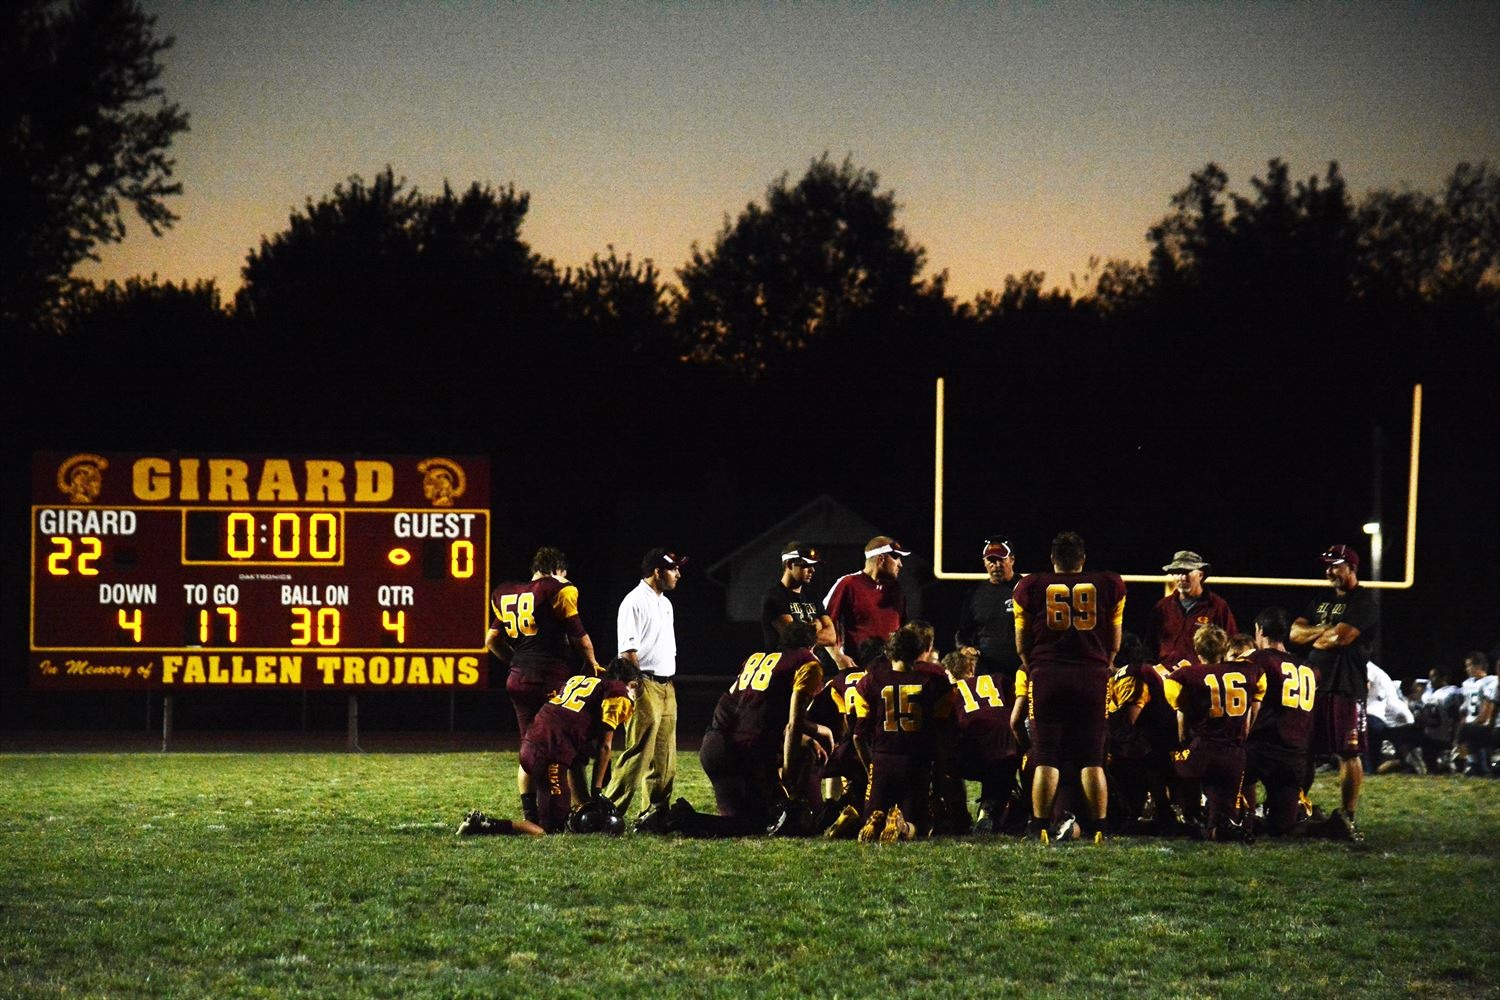 Girard High School - Boys Varsity Football